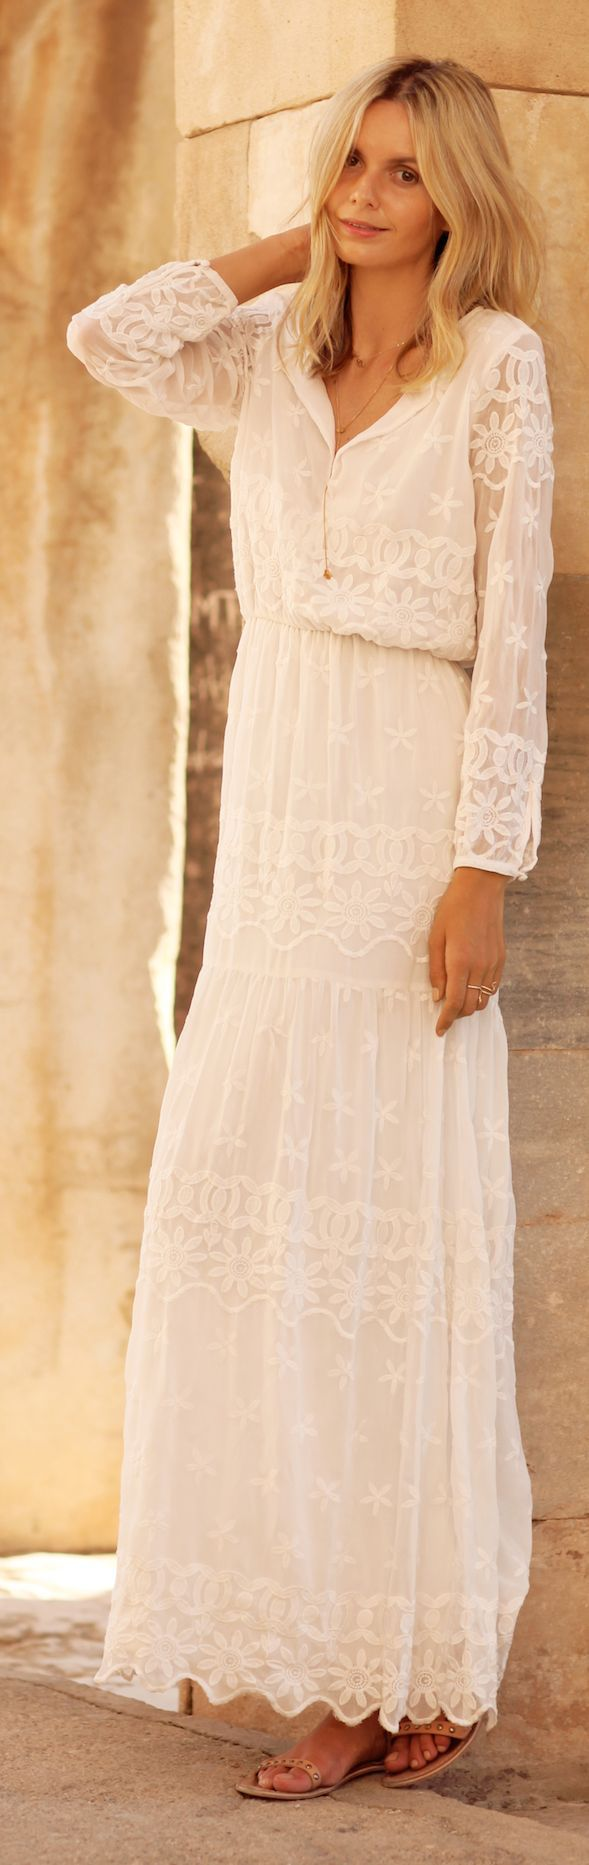 White Lace Maxi Dress by Tuula